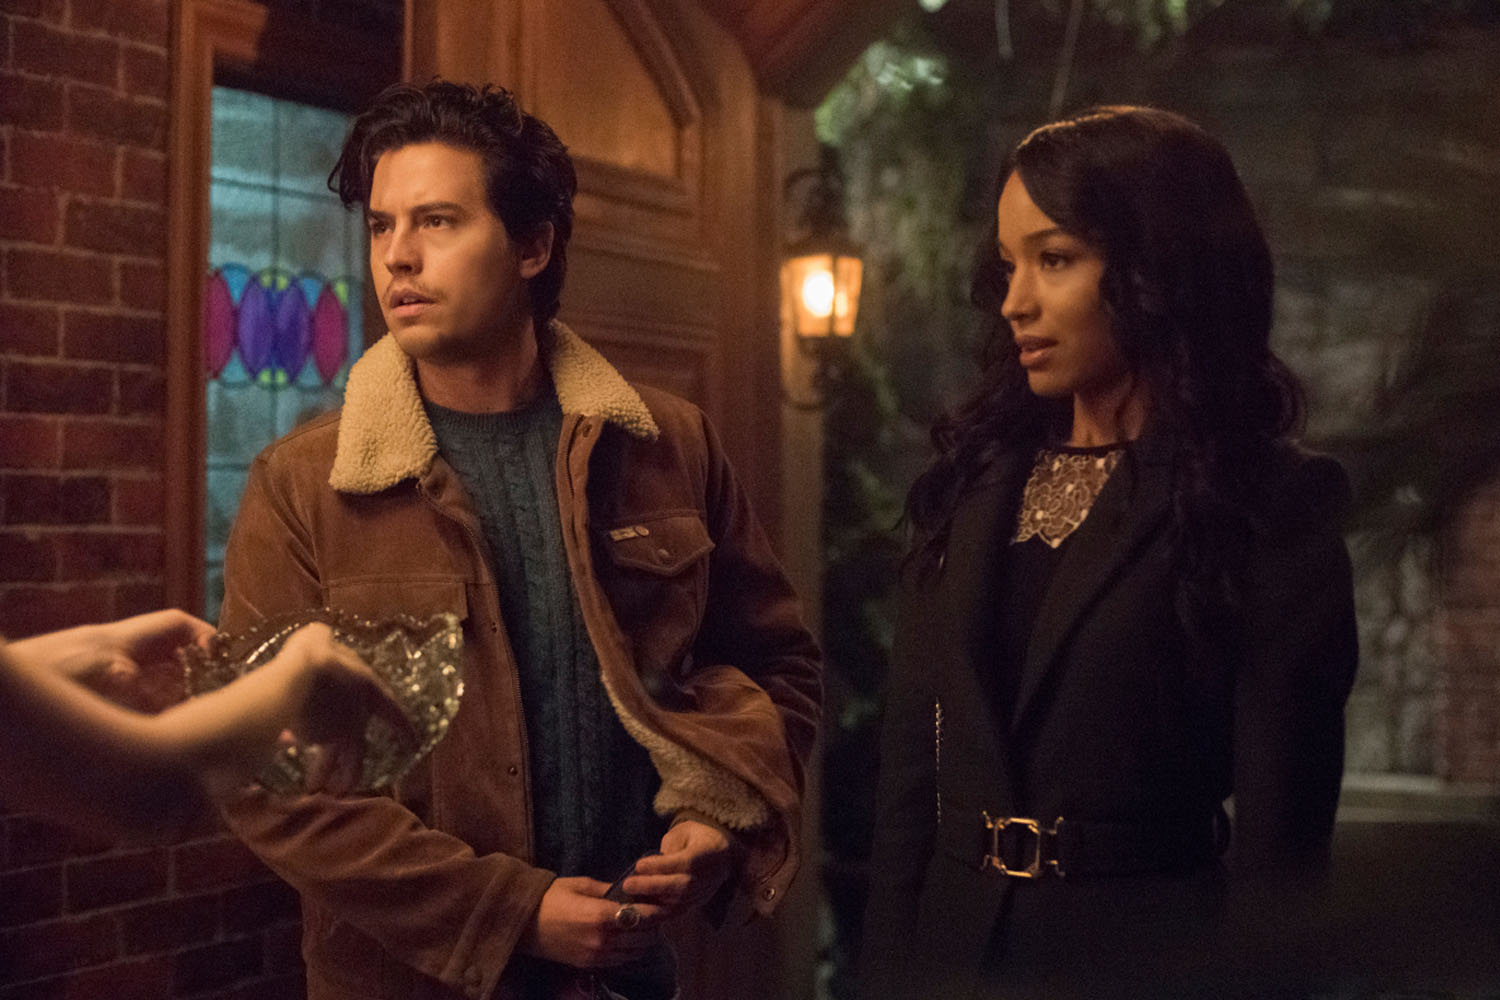 'Riverdale' season 5 episode 8 review: A disappointing return to form